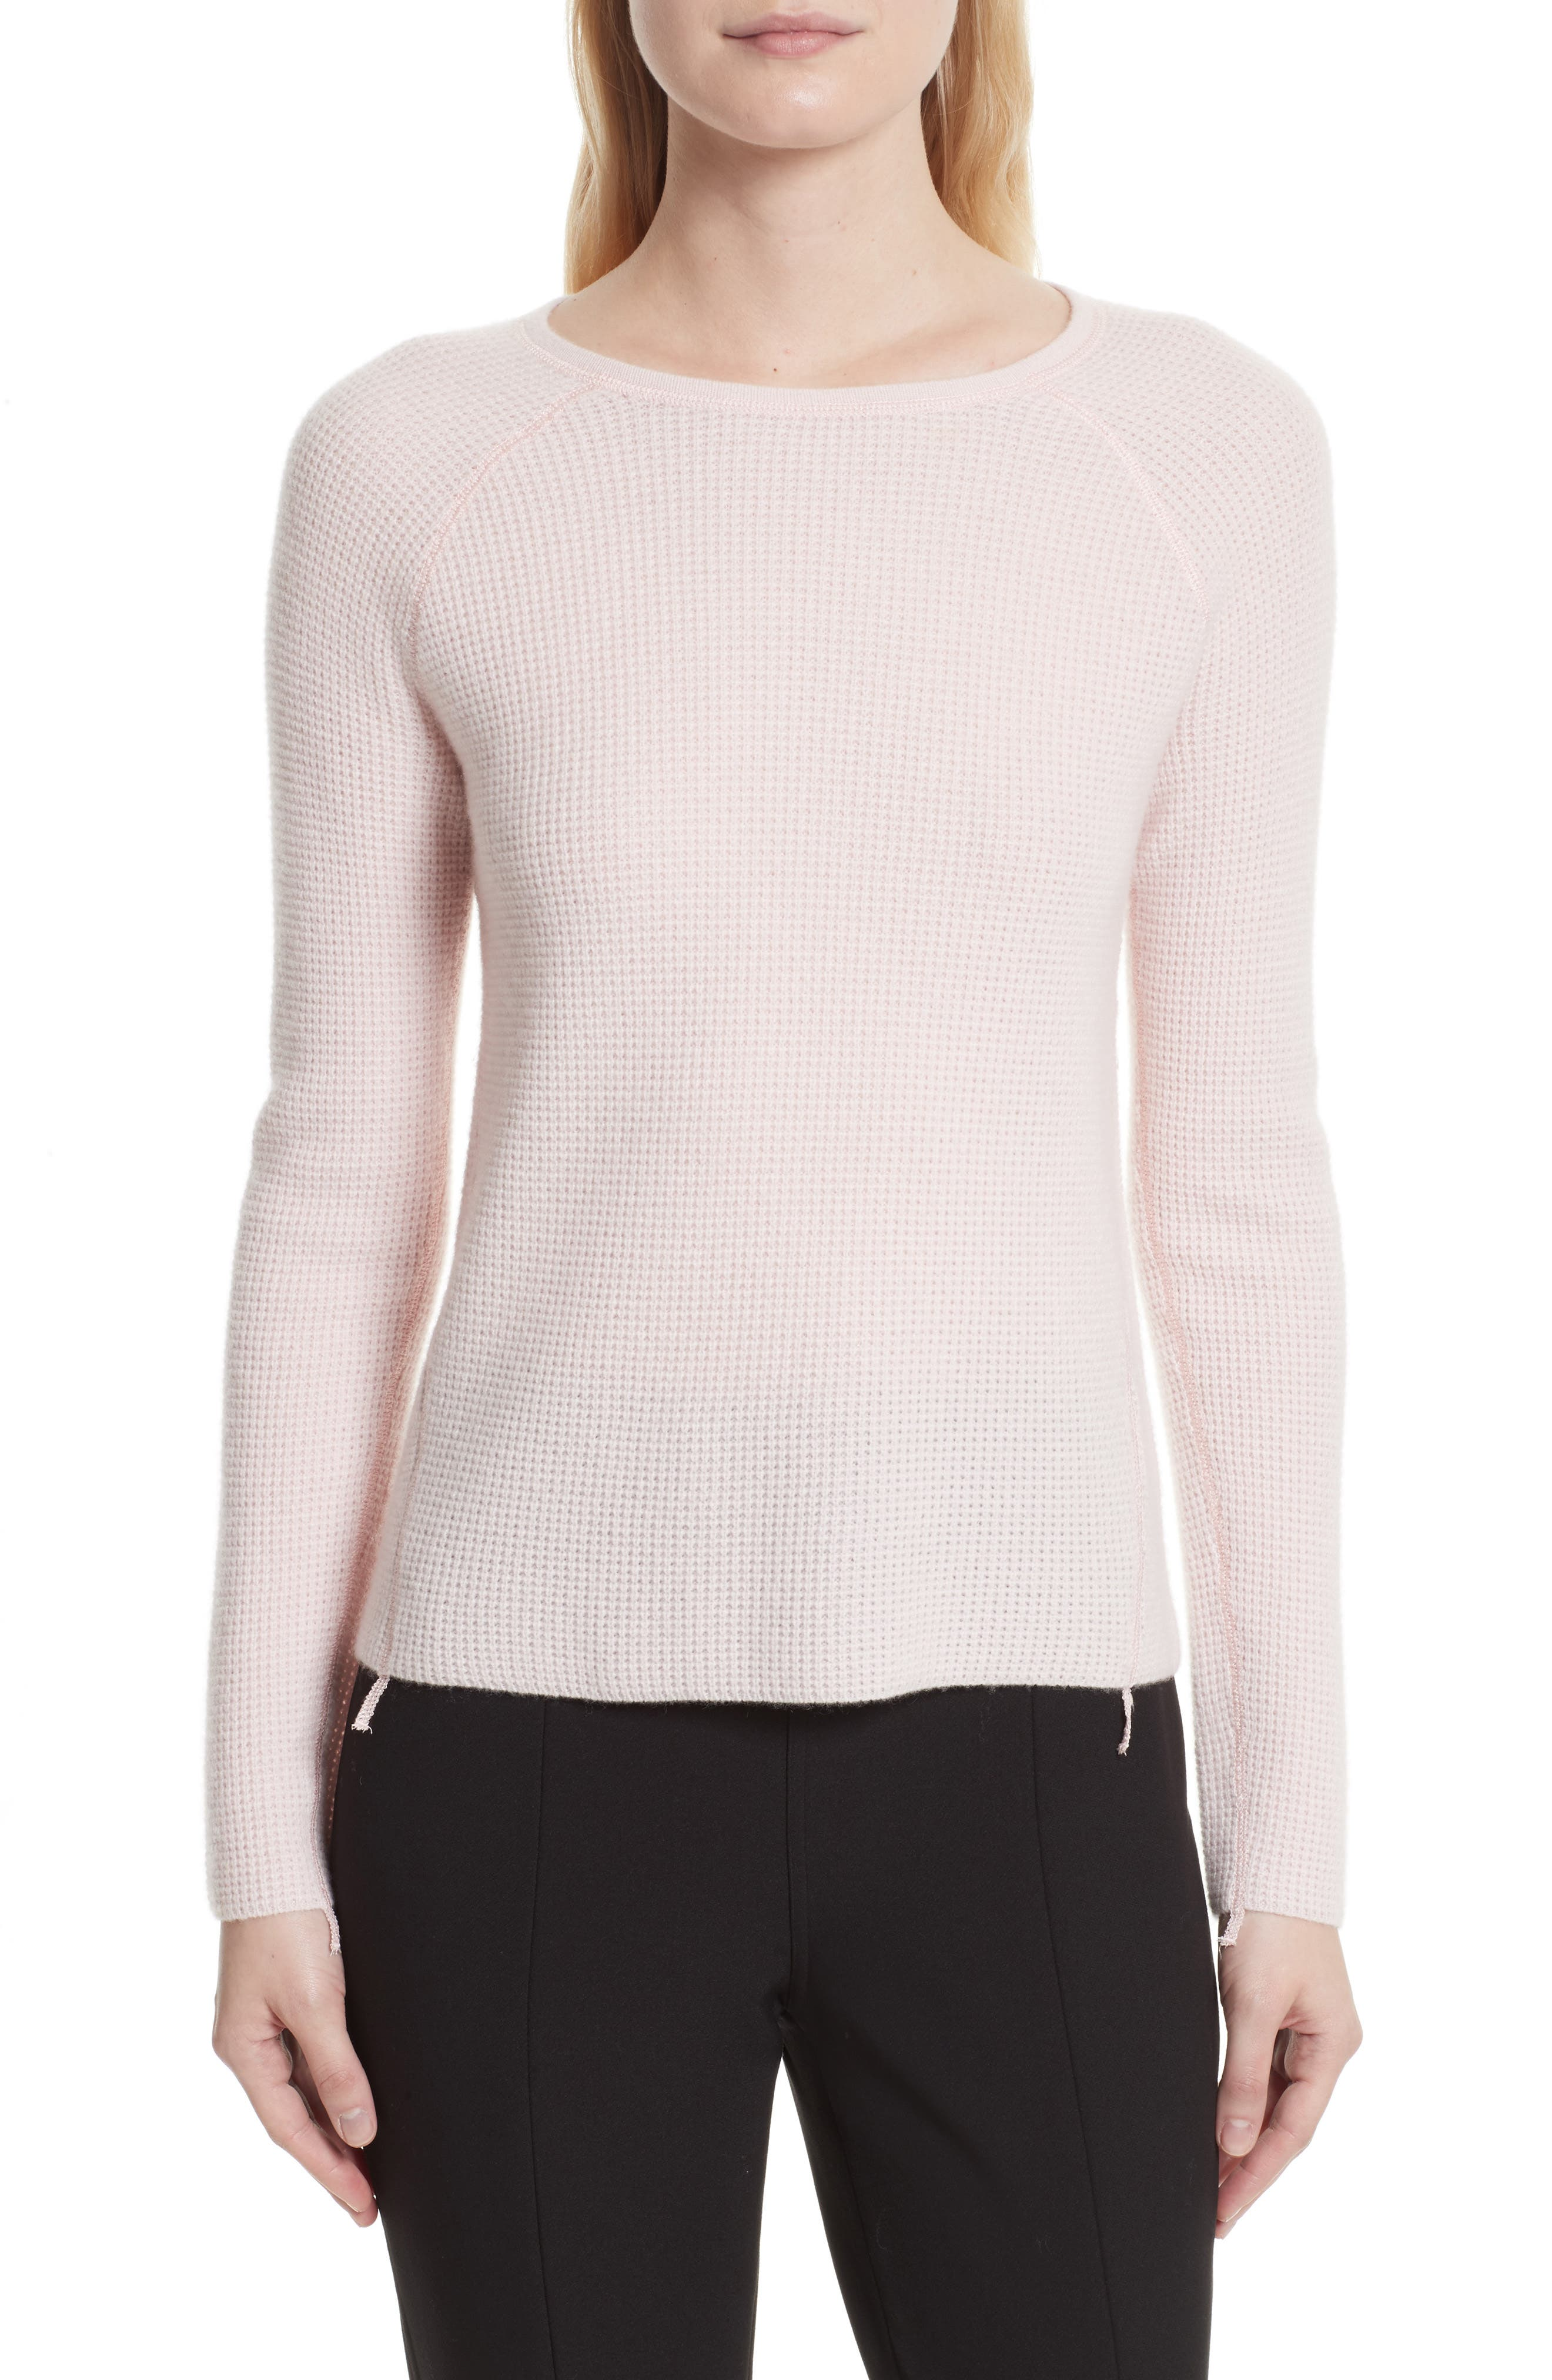 Elizabeth and James Karina Waffle Knit Cashmere Sweater